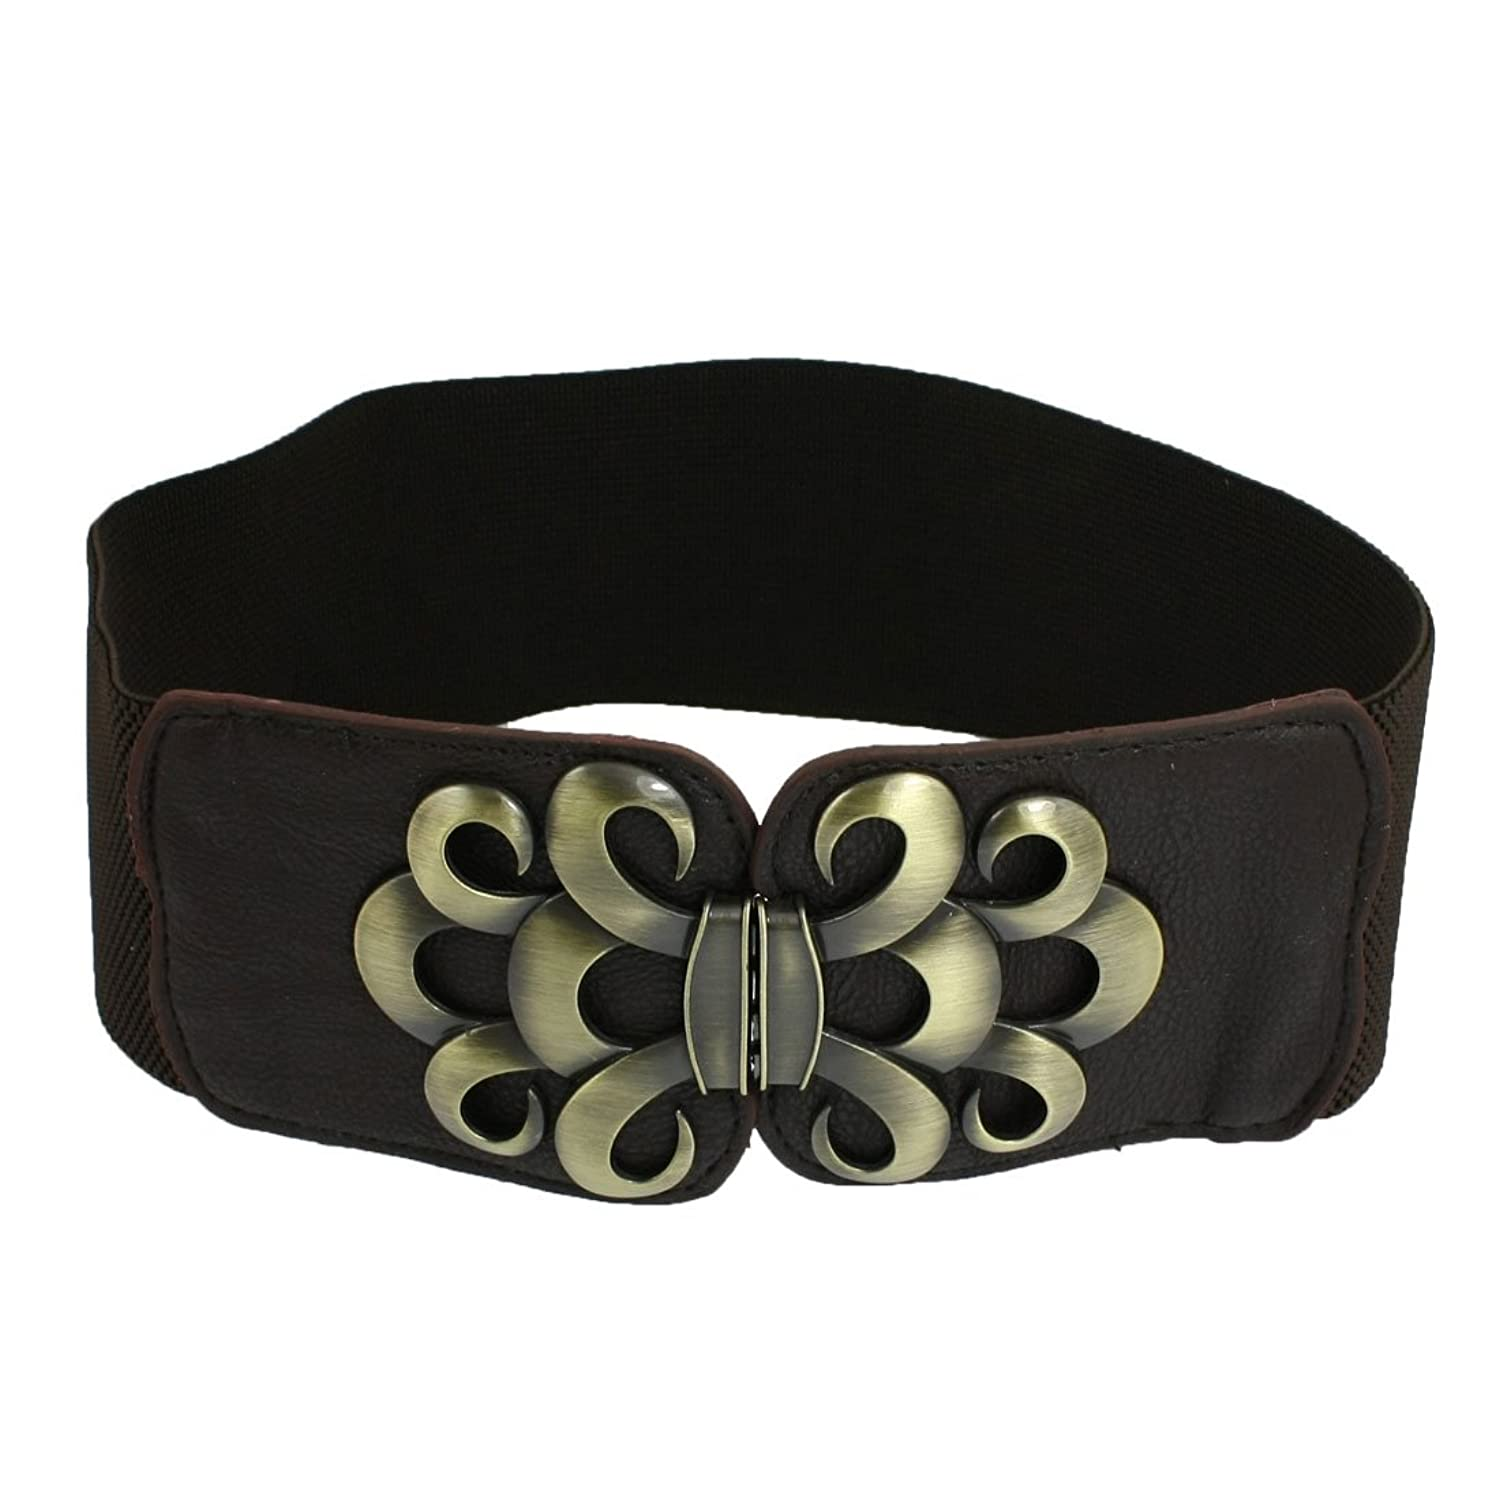 Lady Faux Leather Metal Interlock Buckle Elastic Waist Belt Cinch